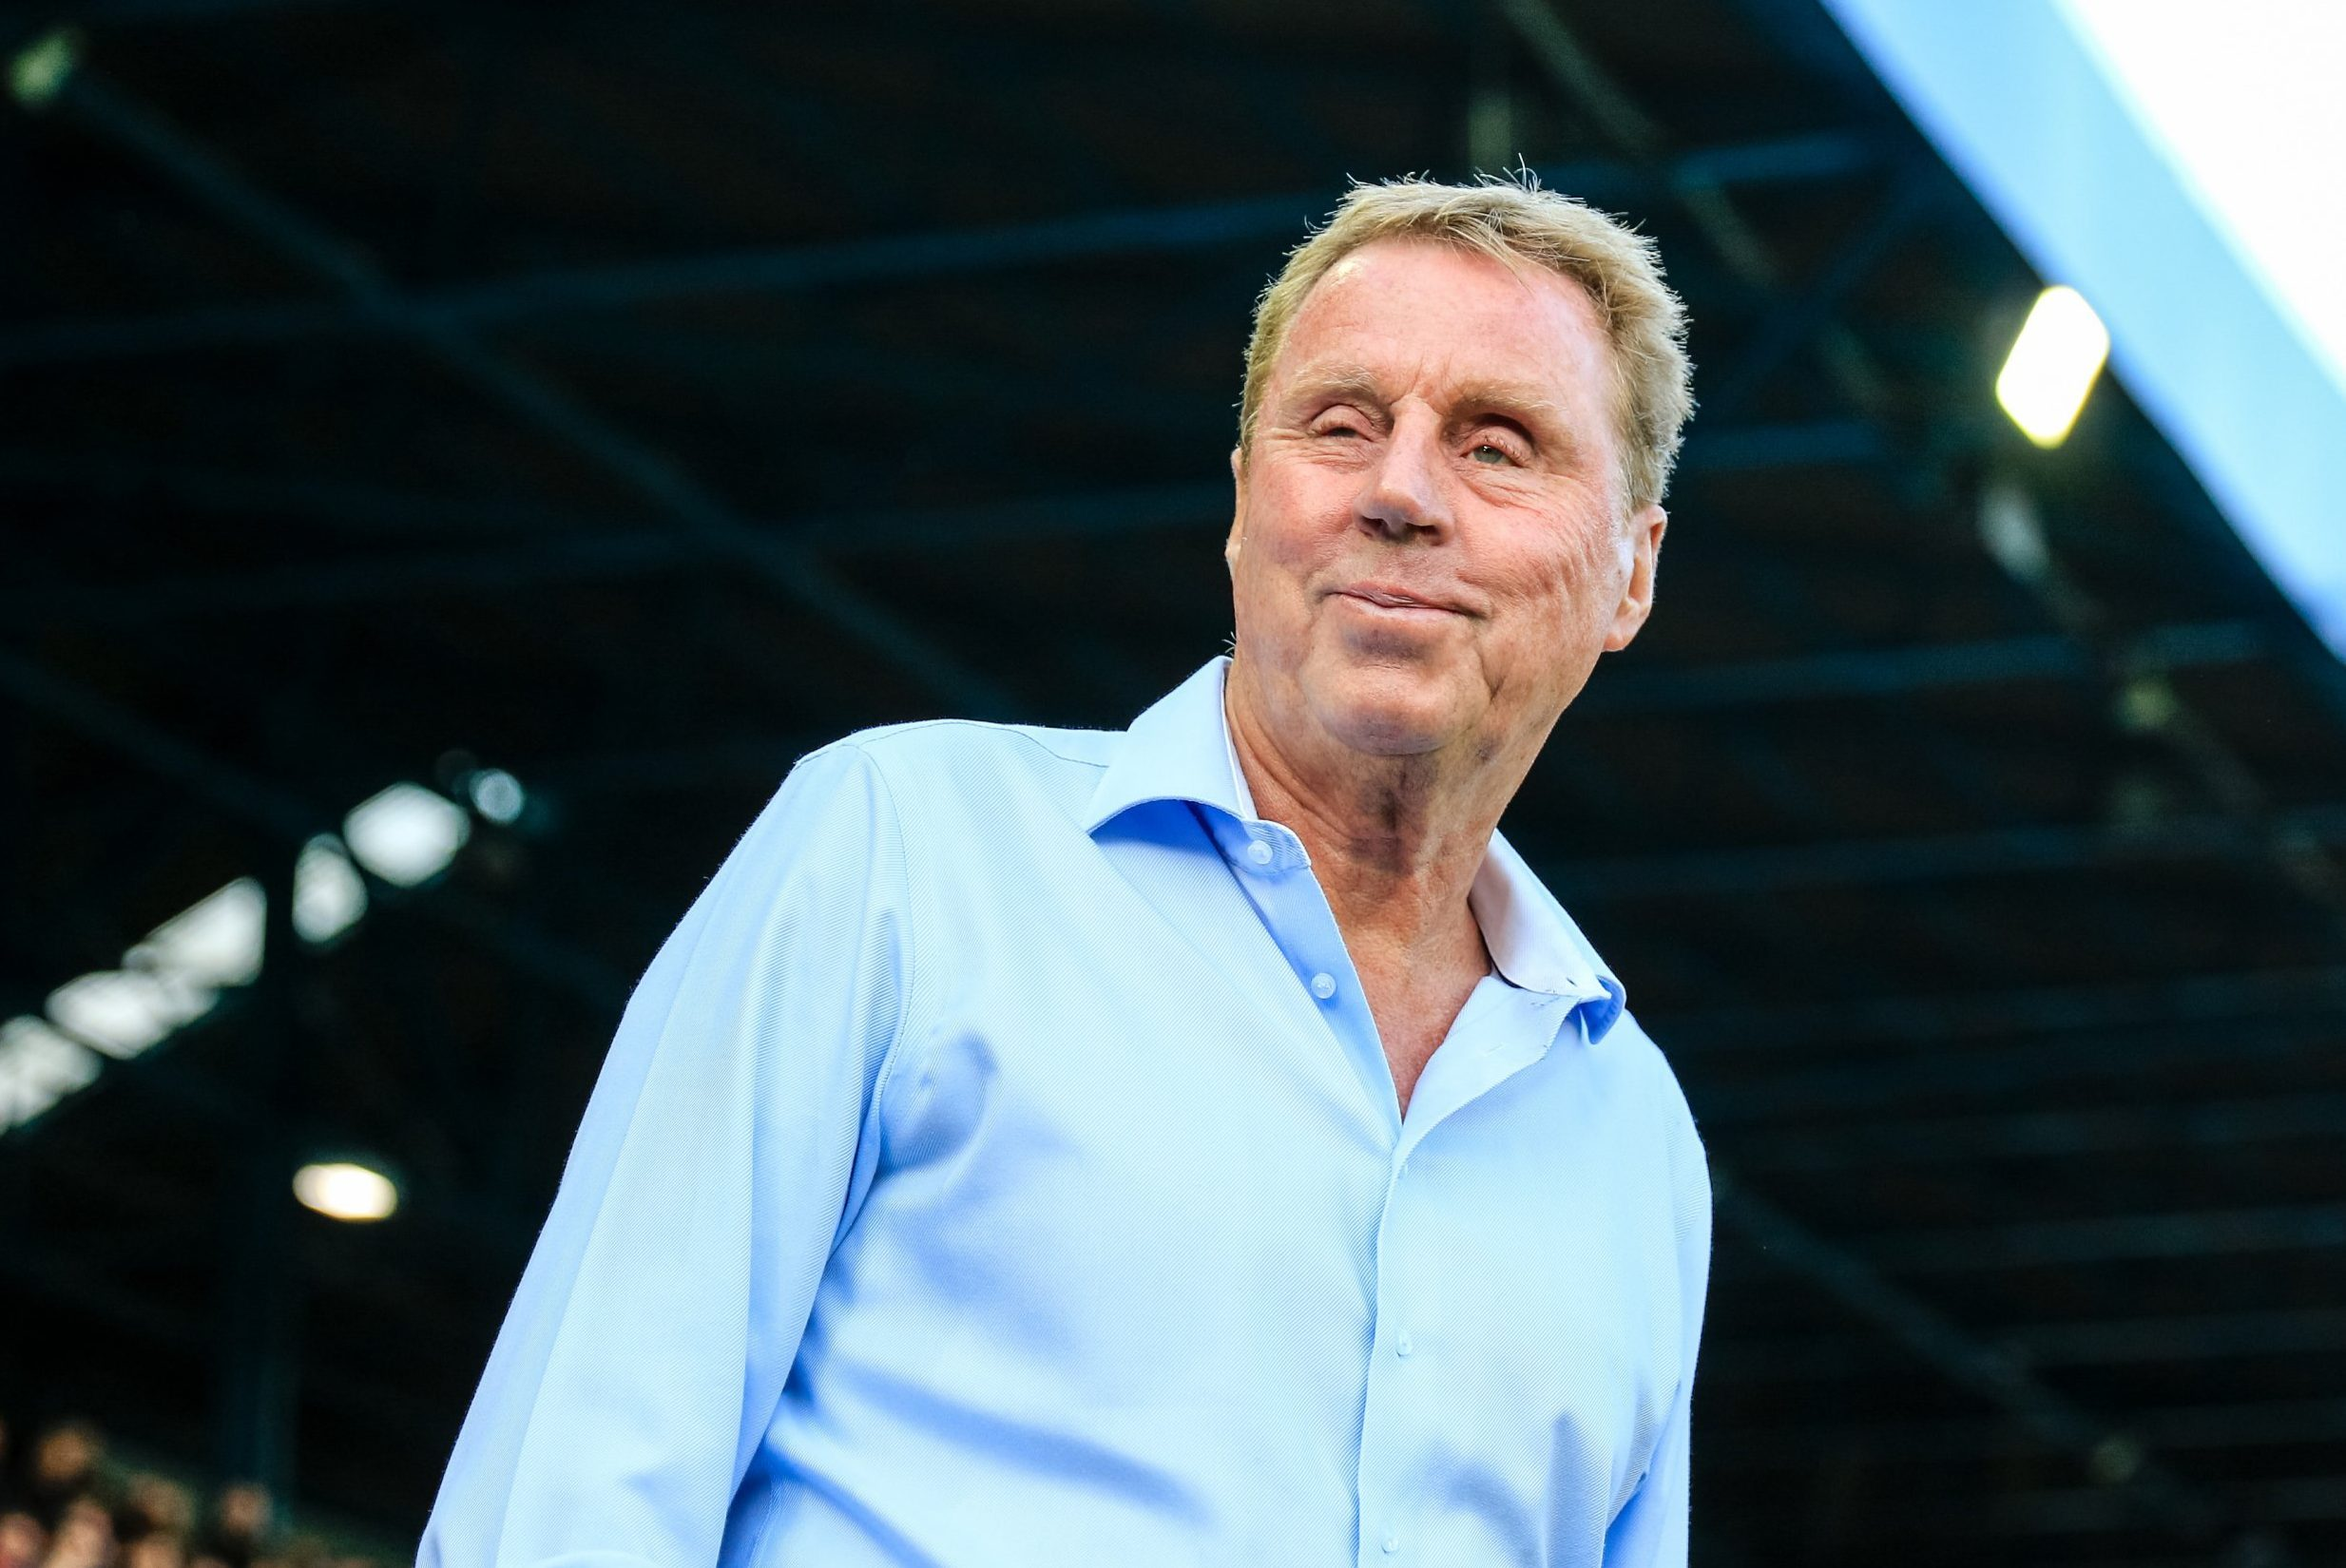 FILE - English Former Football Manager Harry Redknapp Is Crowned King of I'm A Celebrity...Get Me Out of Here! 2018 August 15th 2017, St. Andrews, Birmingham, England; EFL Championship Football, Birmingham versus Bolton; Harry Redknapp Manager of Birmingham City FC smiles to the fans before the game (Photo by Steve Feeney/Action Plus via Getty Images)